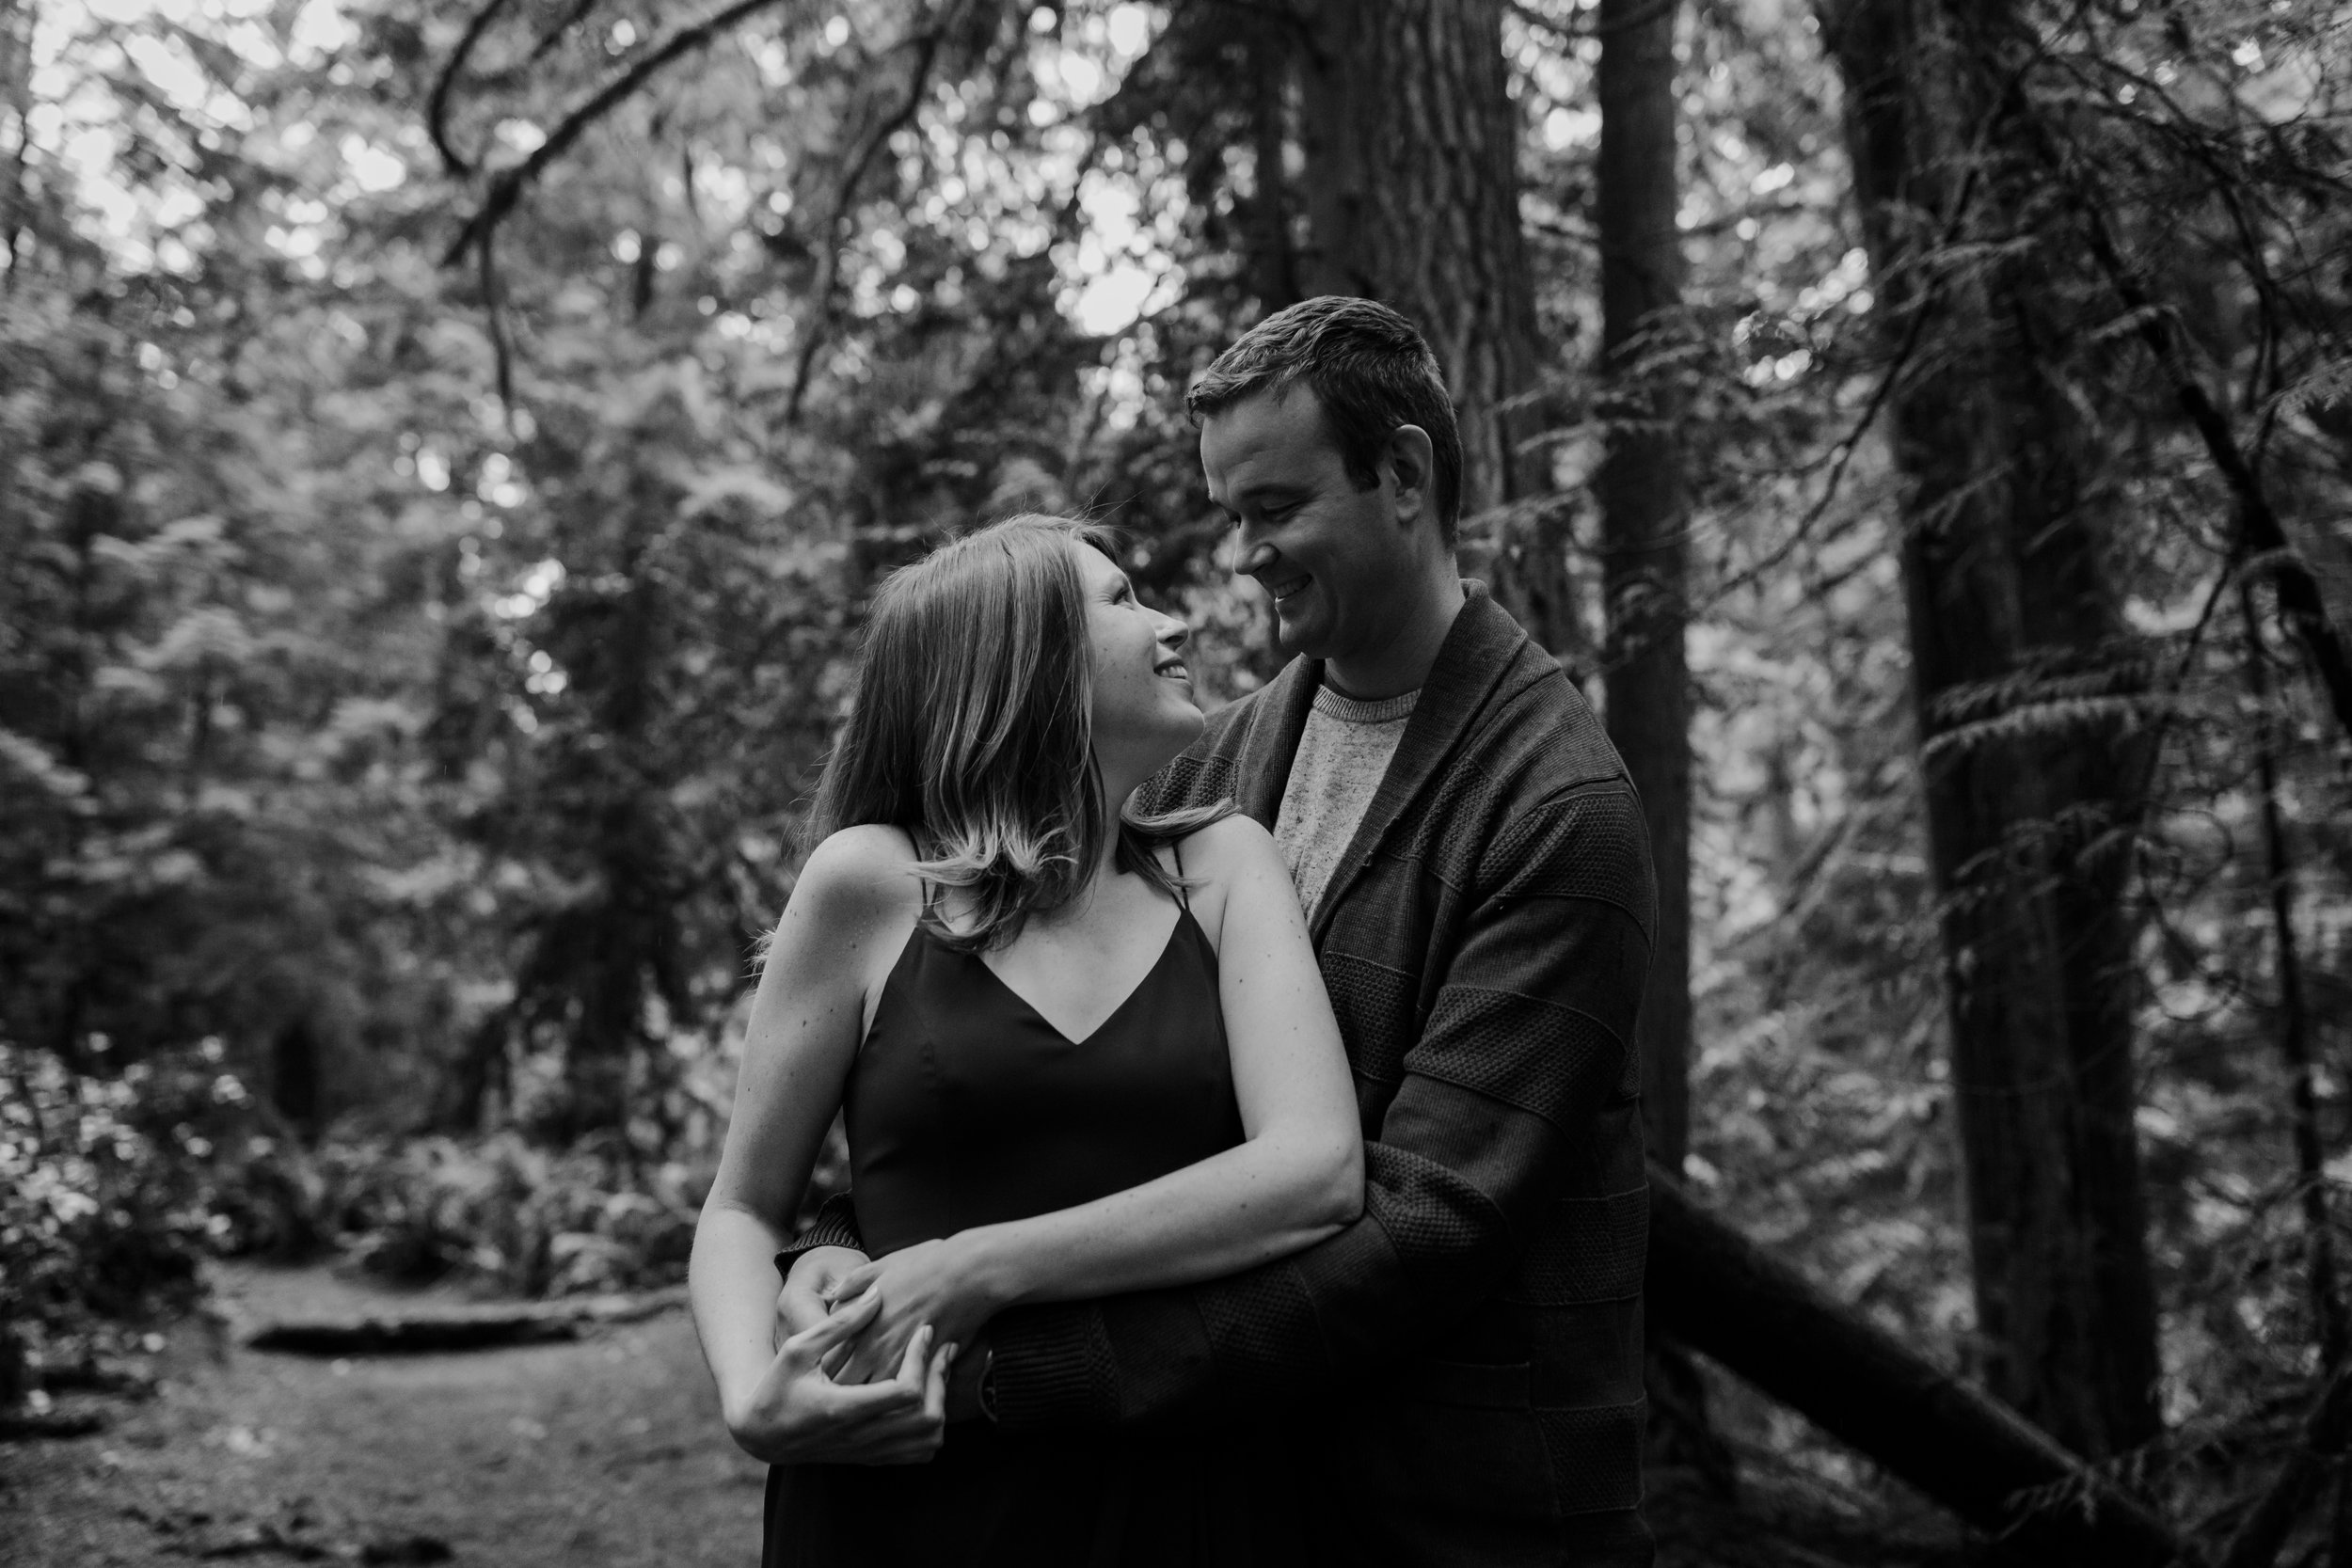 SUNSHINE COAST FOREST & BEACH ENGAGEMENT PHOTOS — Ashley & Antoine — JENNIFER PICARD PHOTOGRAPHY210.JPG